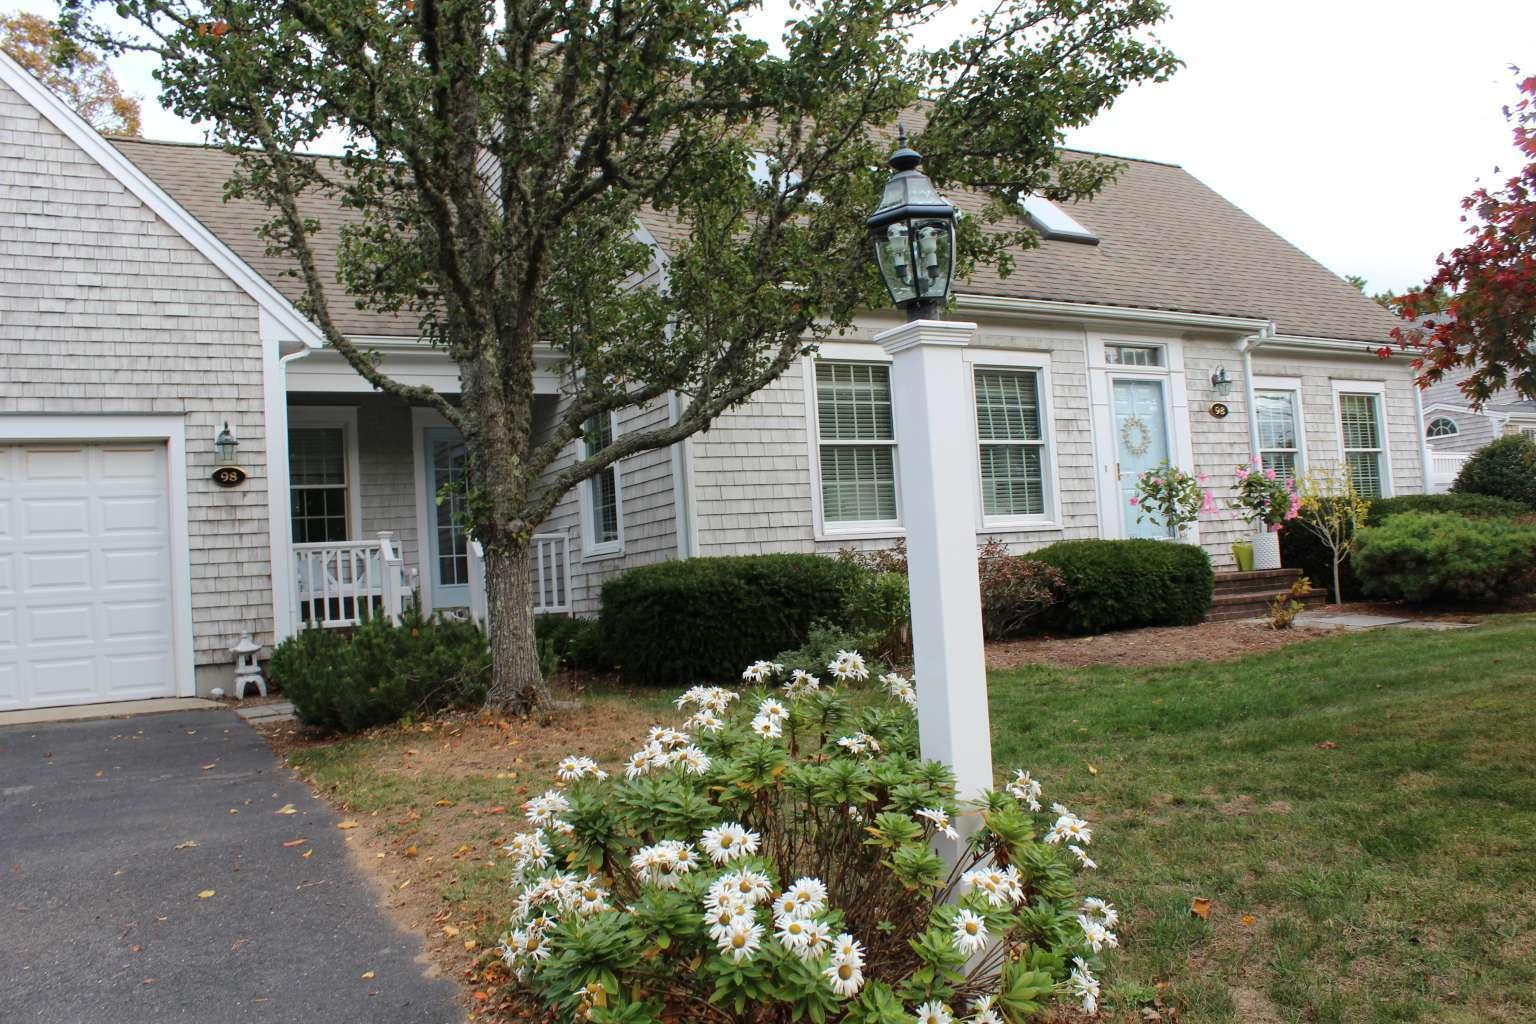 98 Orleans Road, North Chatham MA, 02650 details